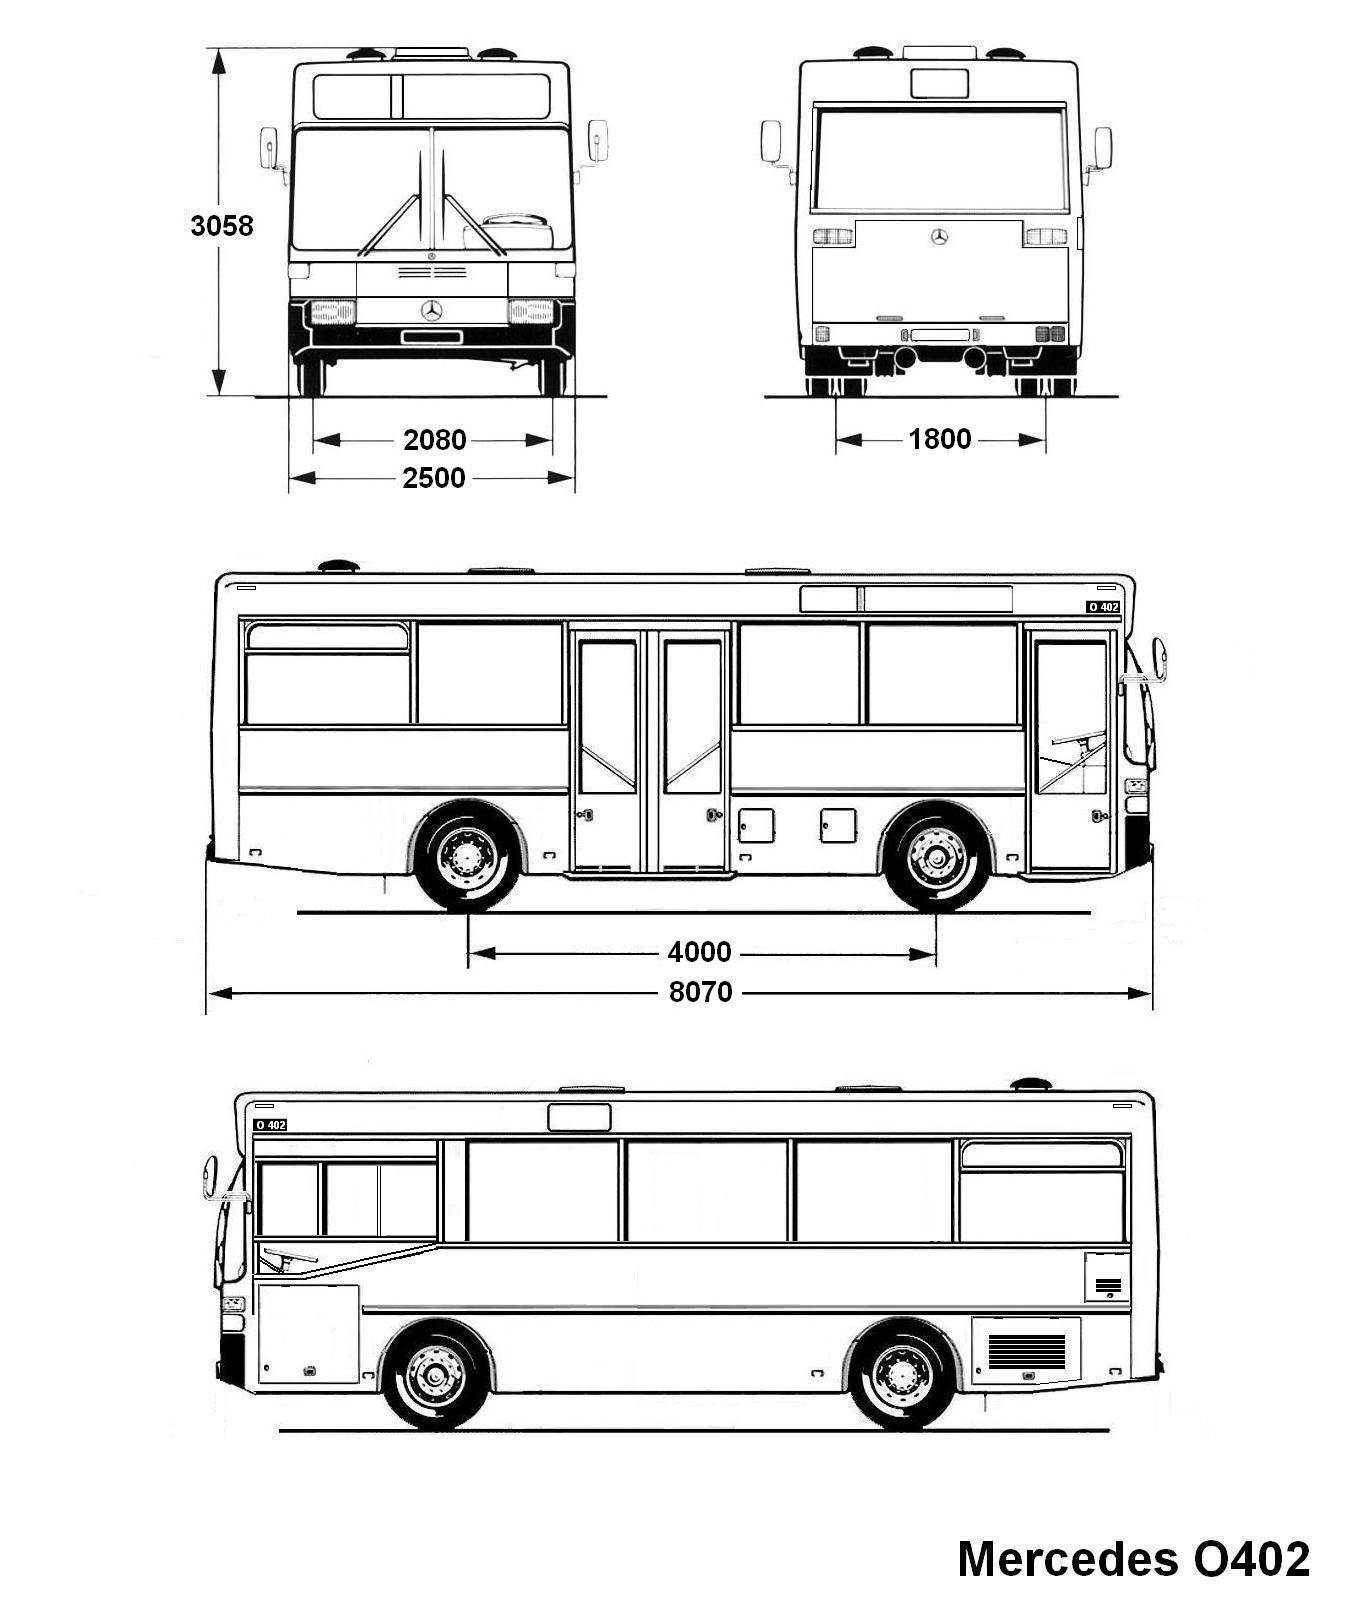 Mercedes Benz O402 Blueprint